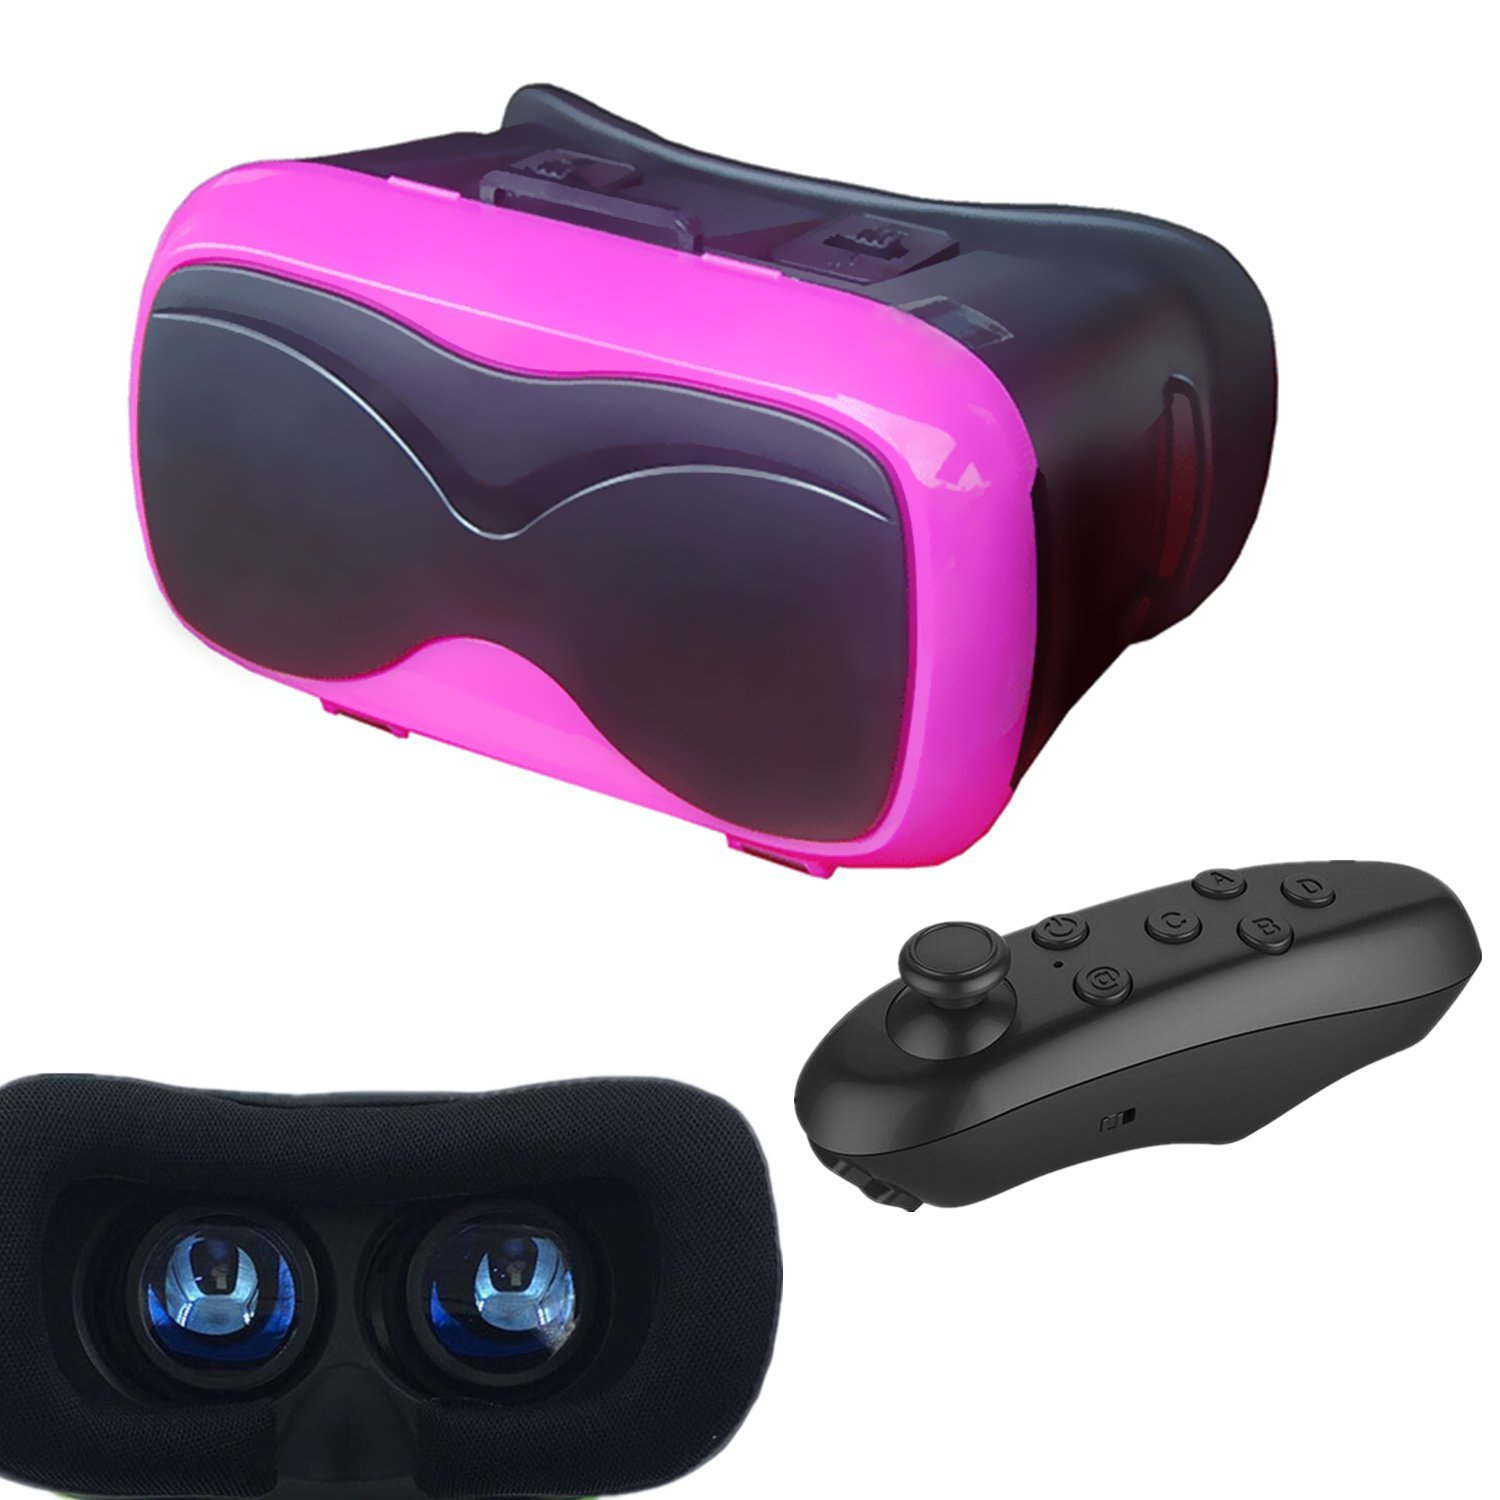 3D VR Glasses Headset, Tsanglight Virtual Reality Glasses with Remote Controller for IOS iPhone 7/6/6S Plus, Android Samsung Galaxy S7 Edge/S7/S6/S5/A5/A3 2016 & Other 4.7-6.5inches Cellphones- Pink